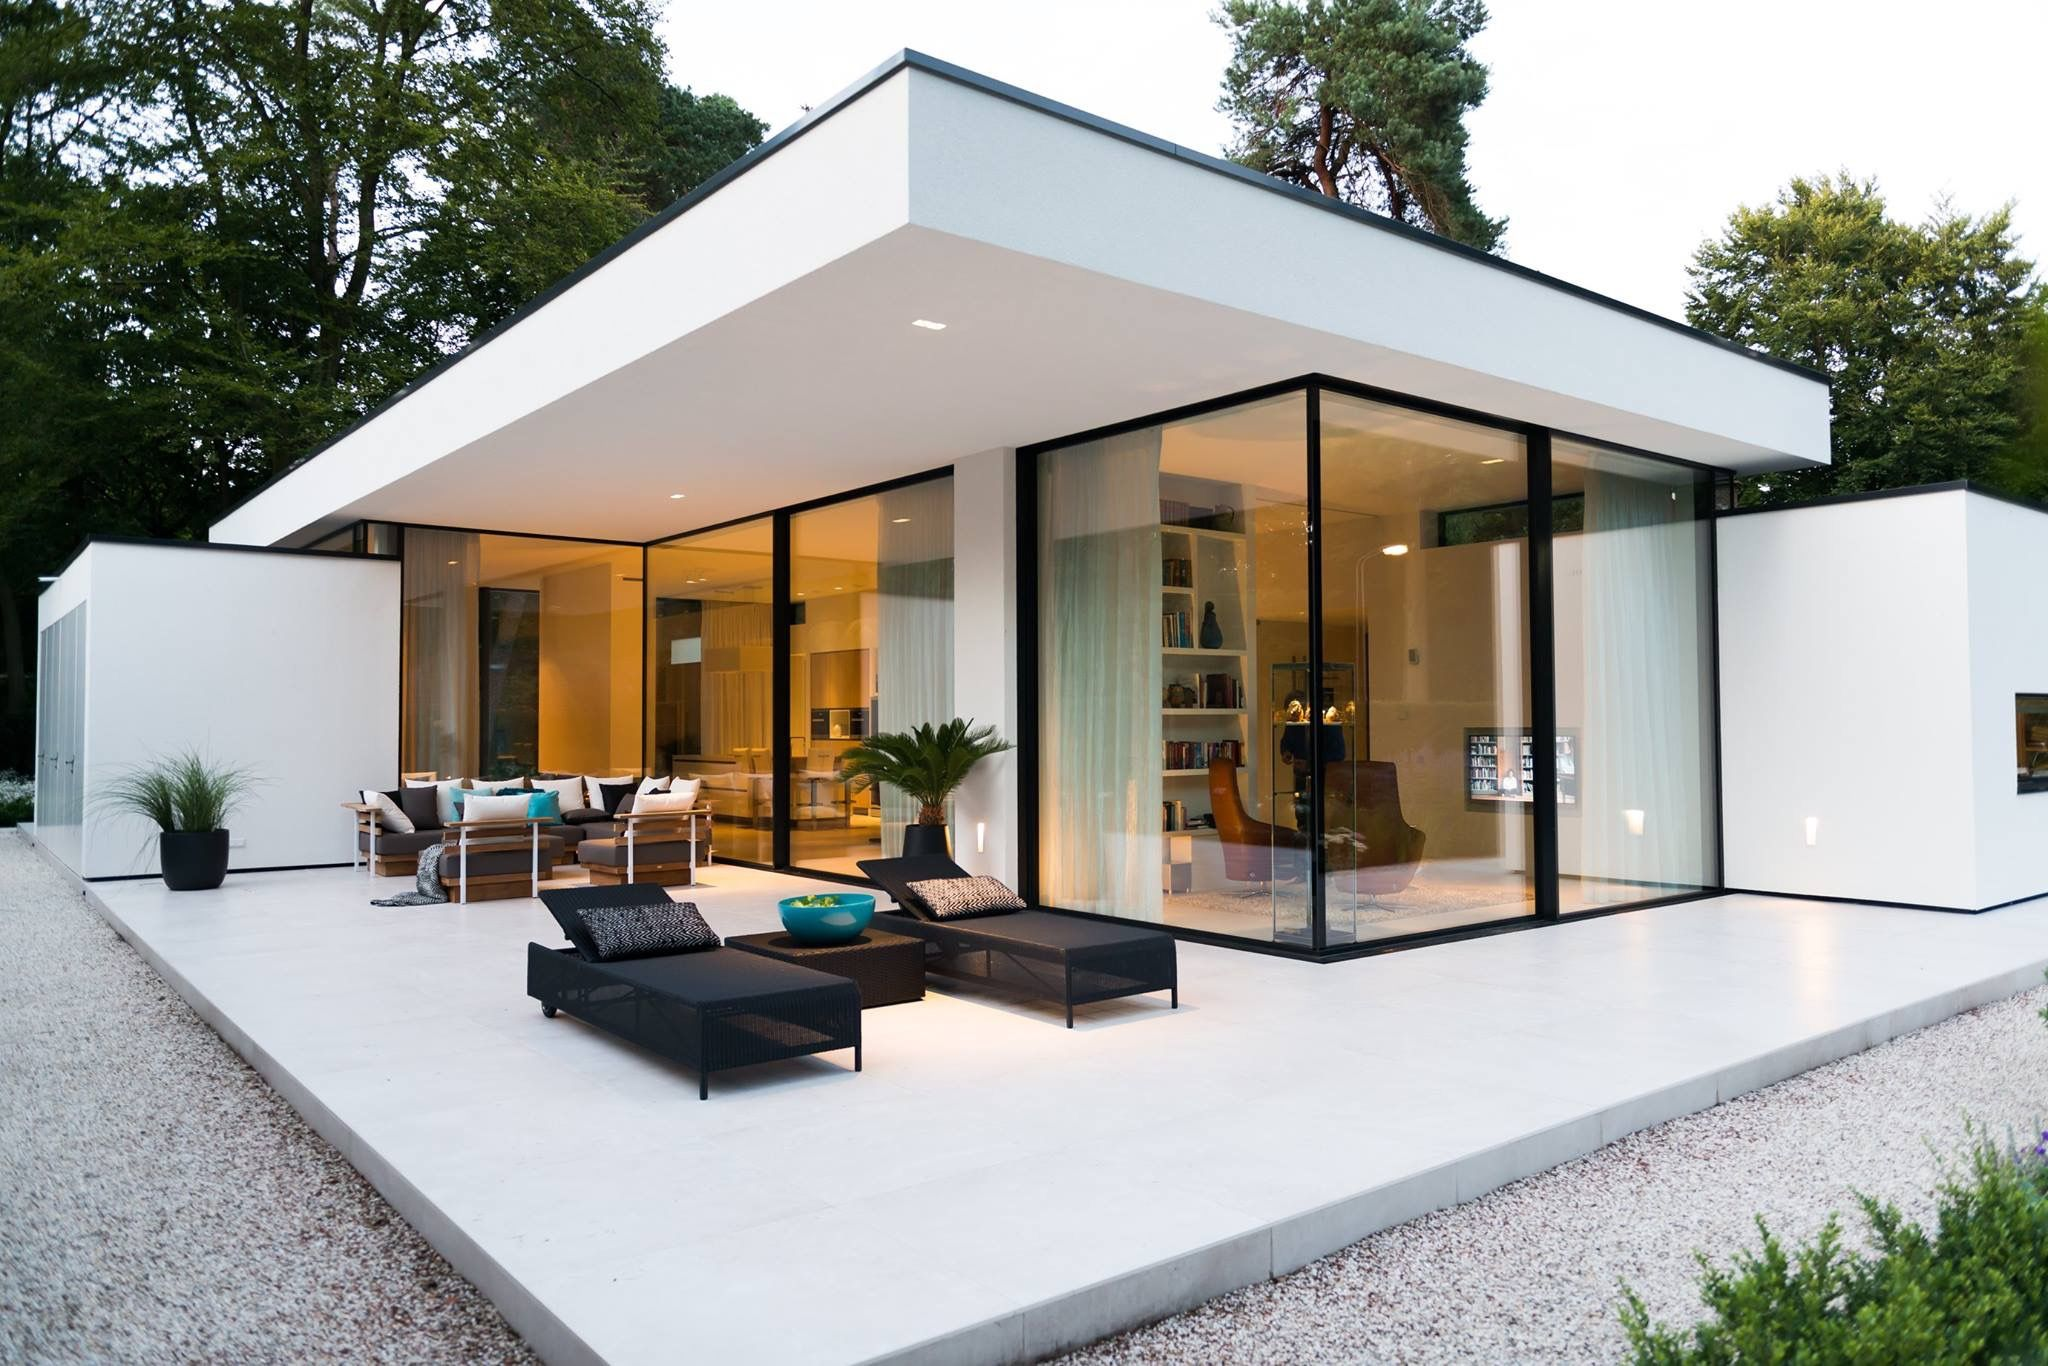 Veranda Moderne Design Black And White Modern Ceiling To Floor Glass Design Outdoor